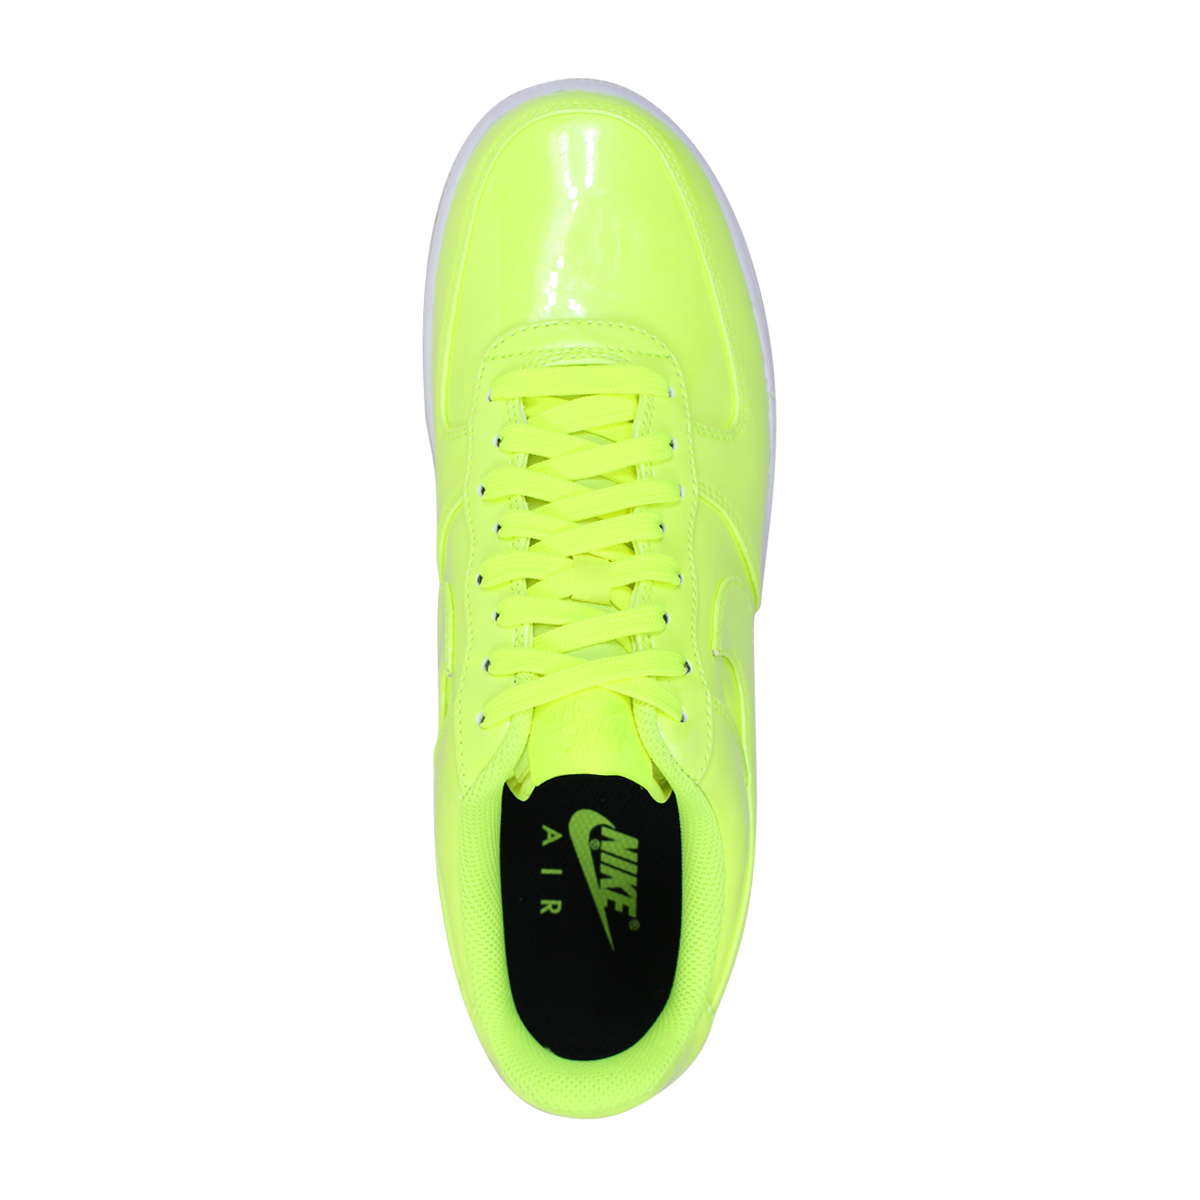 sports shoes 936c8 f6a08 NIKE AIR FORCE 1 UV Nike air force 1 07 LV8 sneakers men gap Dis AJ9505-700  yellow  load planned Shinnyu load in reservation product 4 23 containing    184